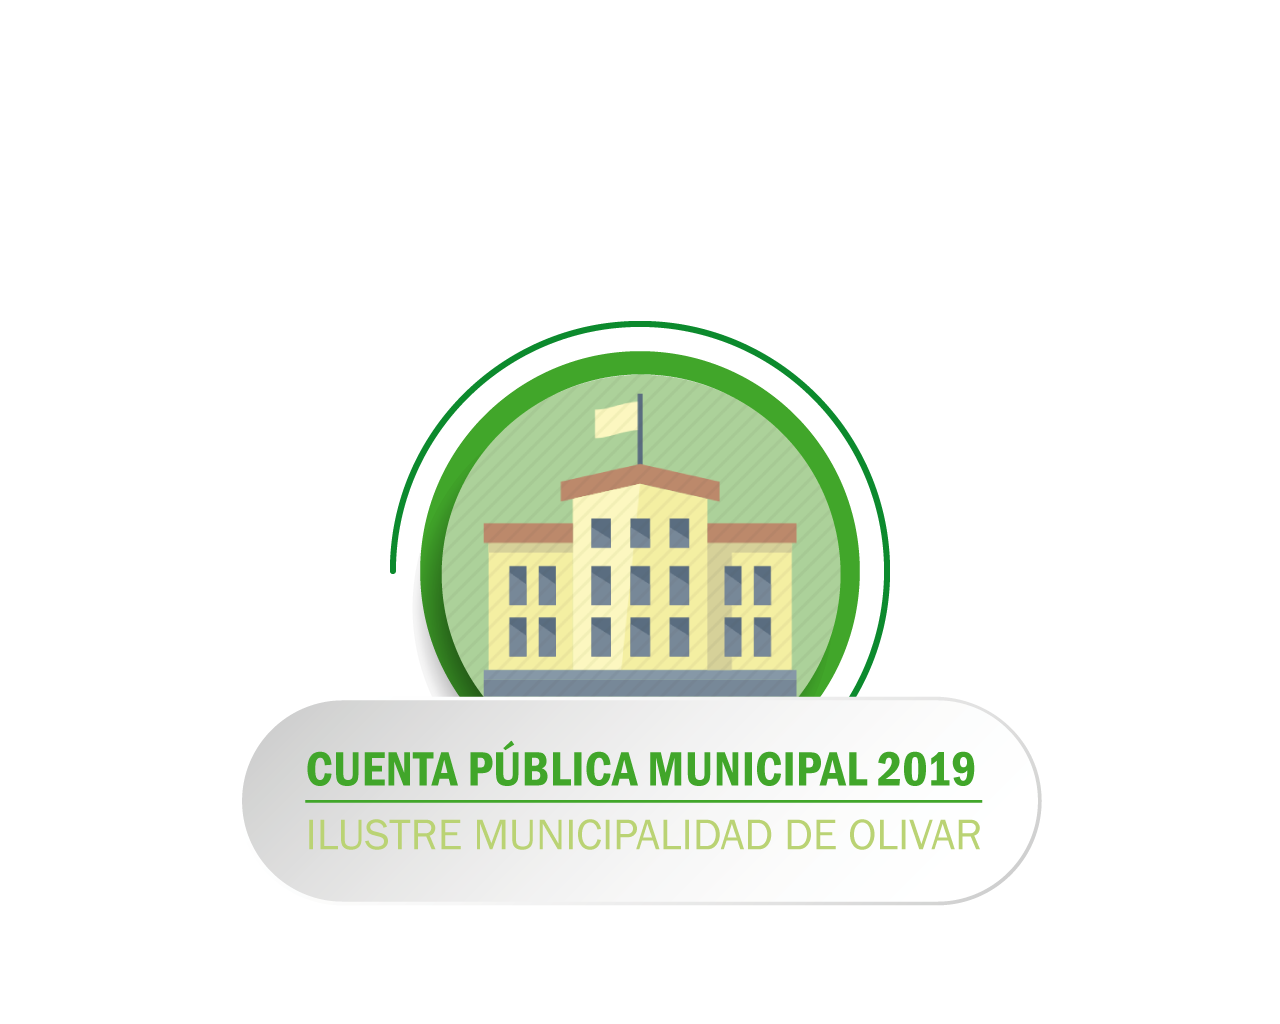 IMG_LOGO_CUENTAPUBLICA.png